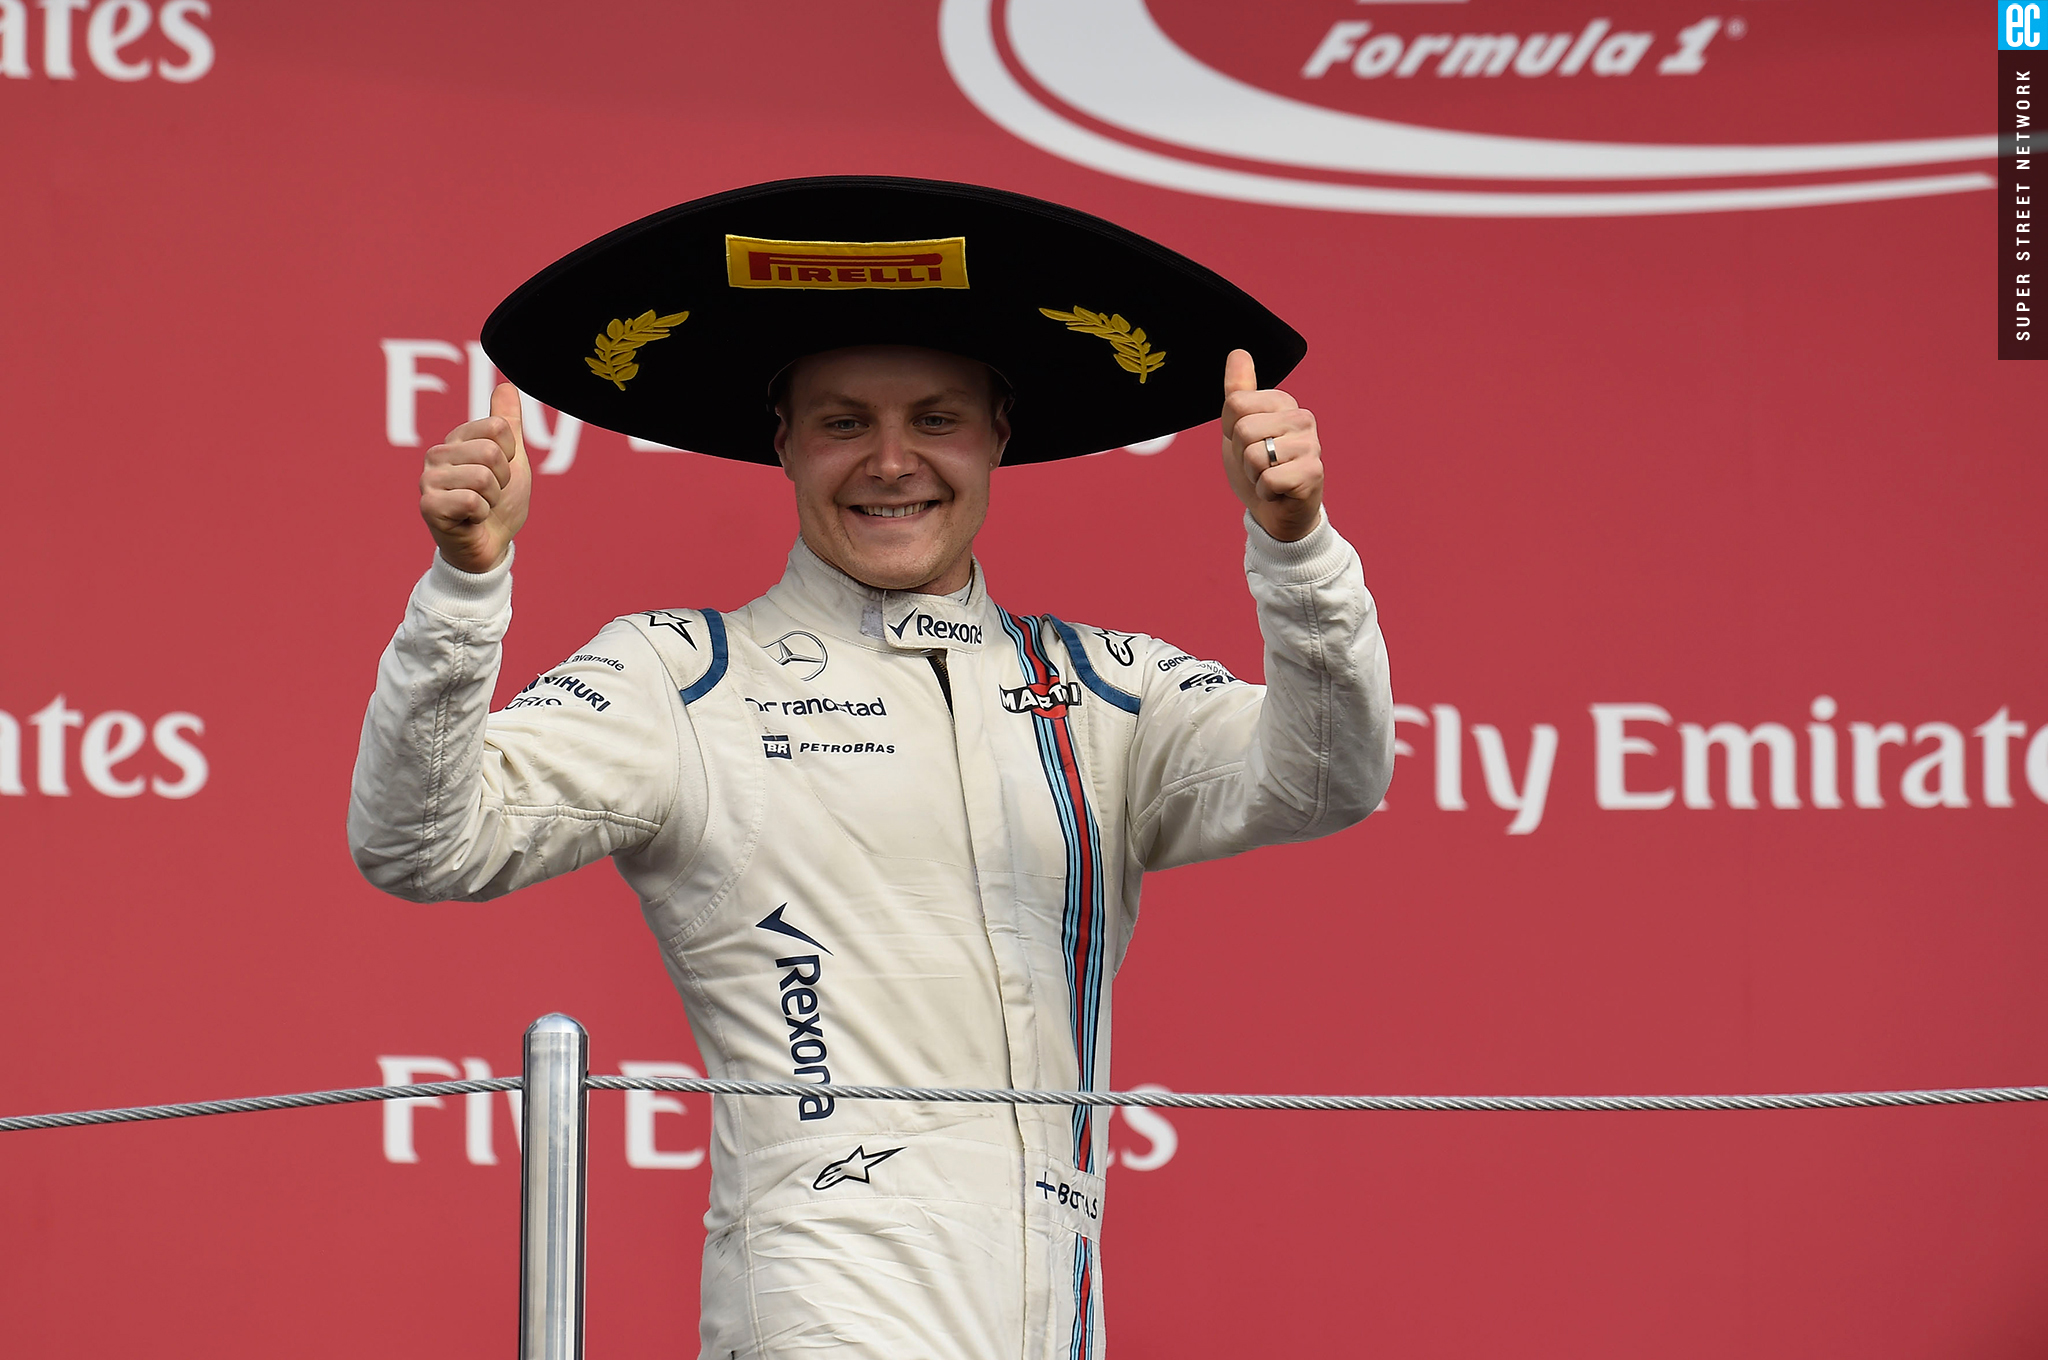 cc9bfeef52249 Mexican grand prix racer wearing pirelli sombrero